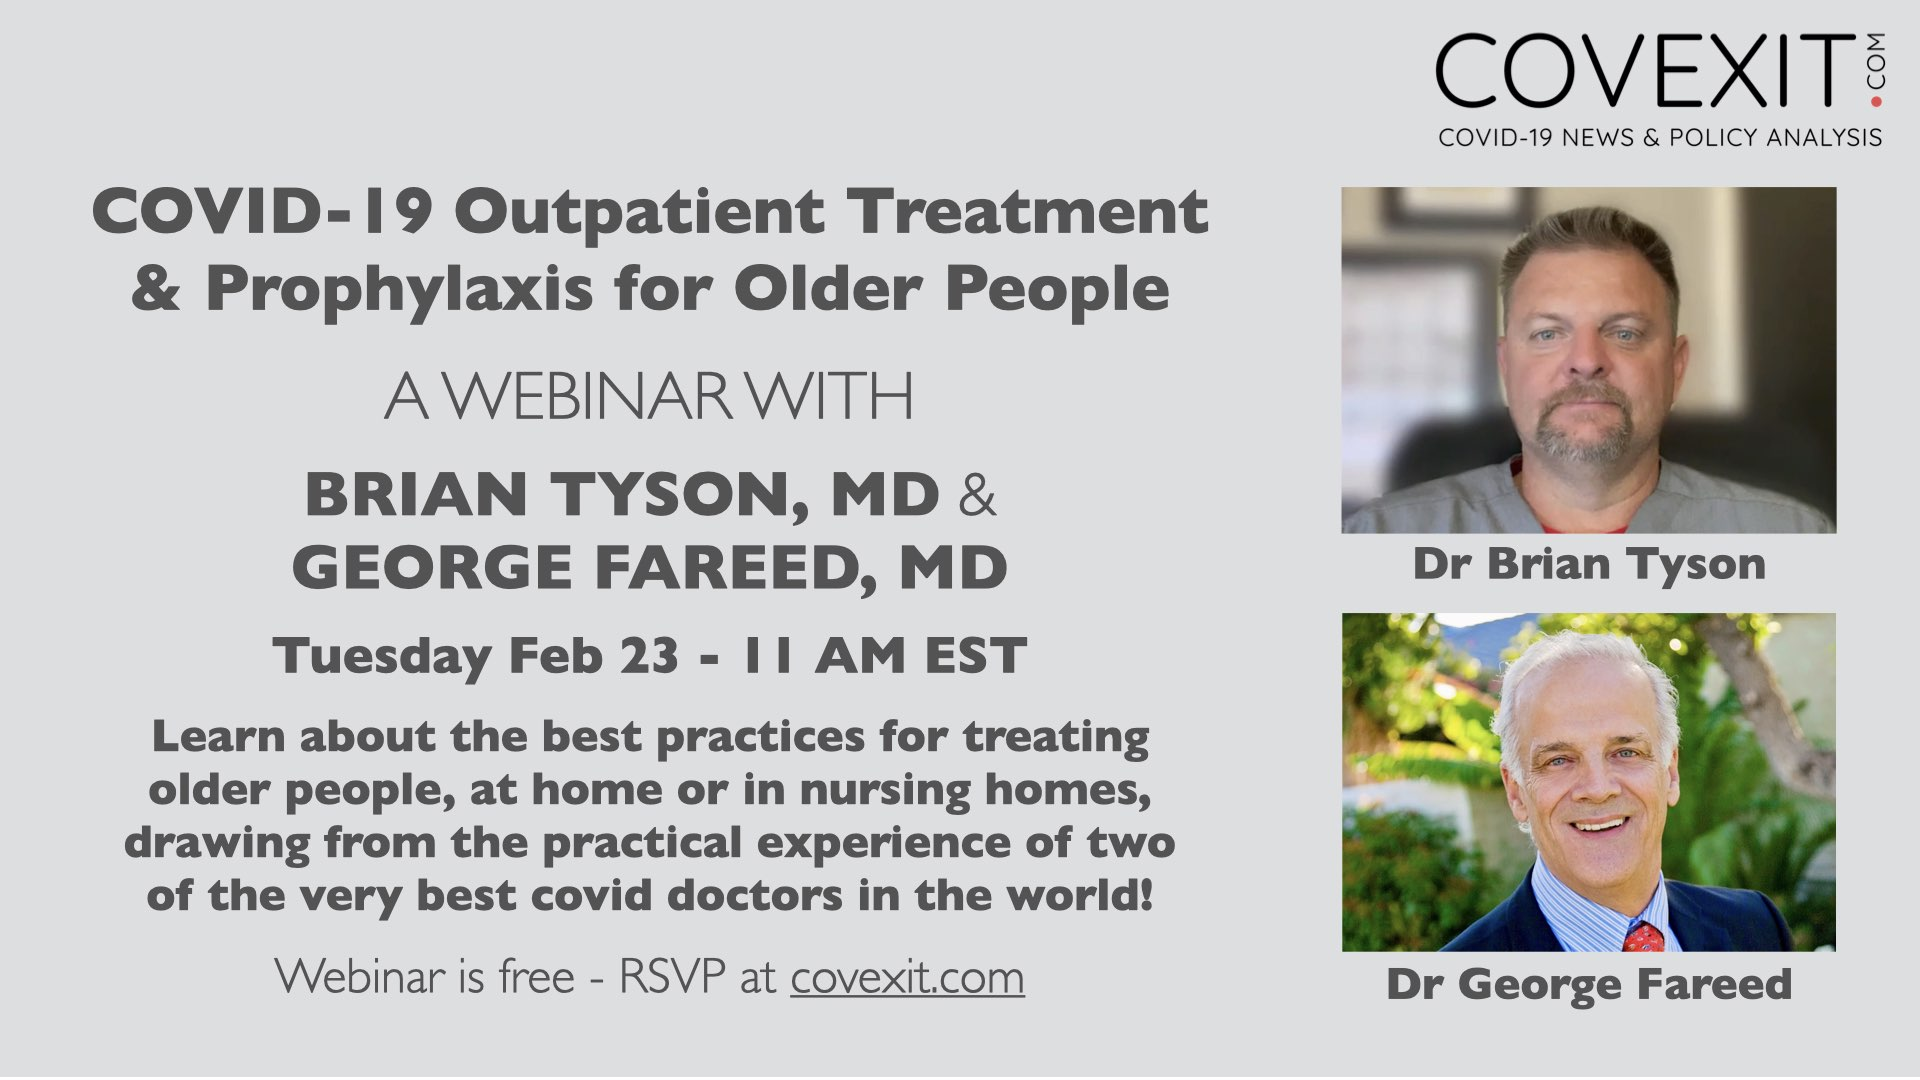 COVID-19 Outpatient Treatment & Prophylaxis for Older People - a Webinar with Dr George Fareed and Dr Brian Tyson